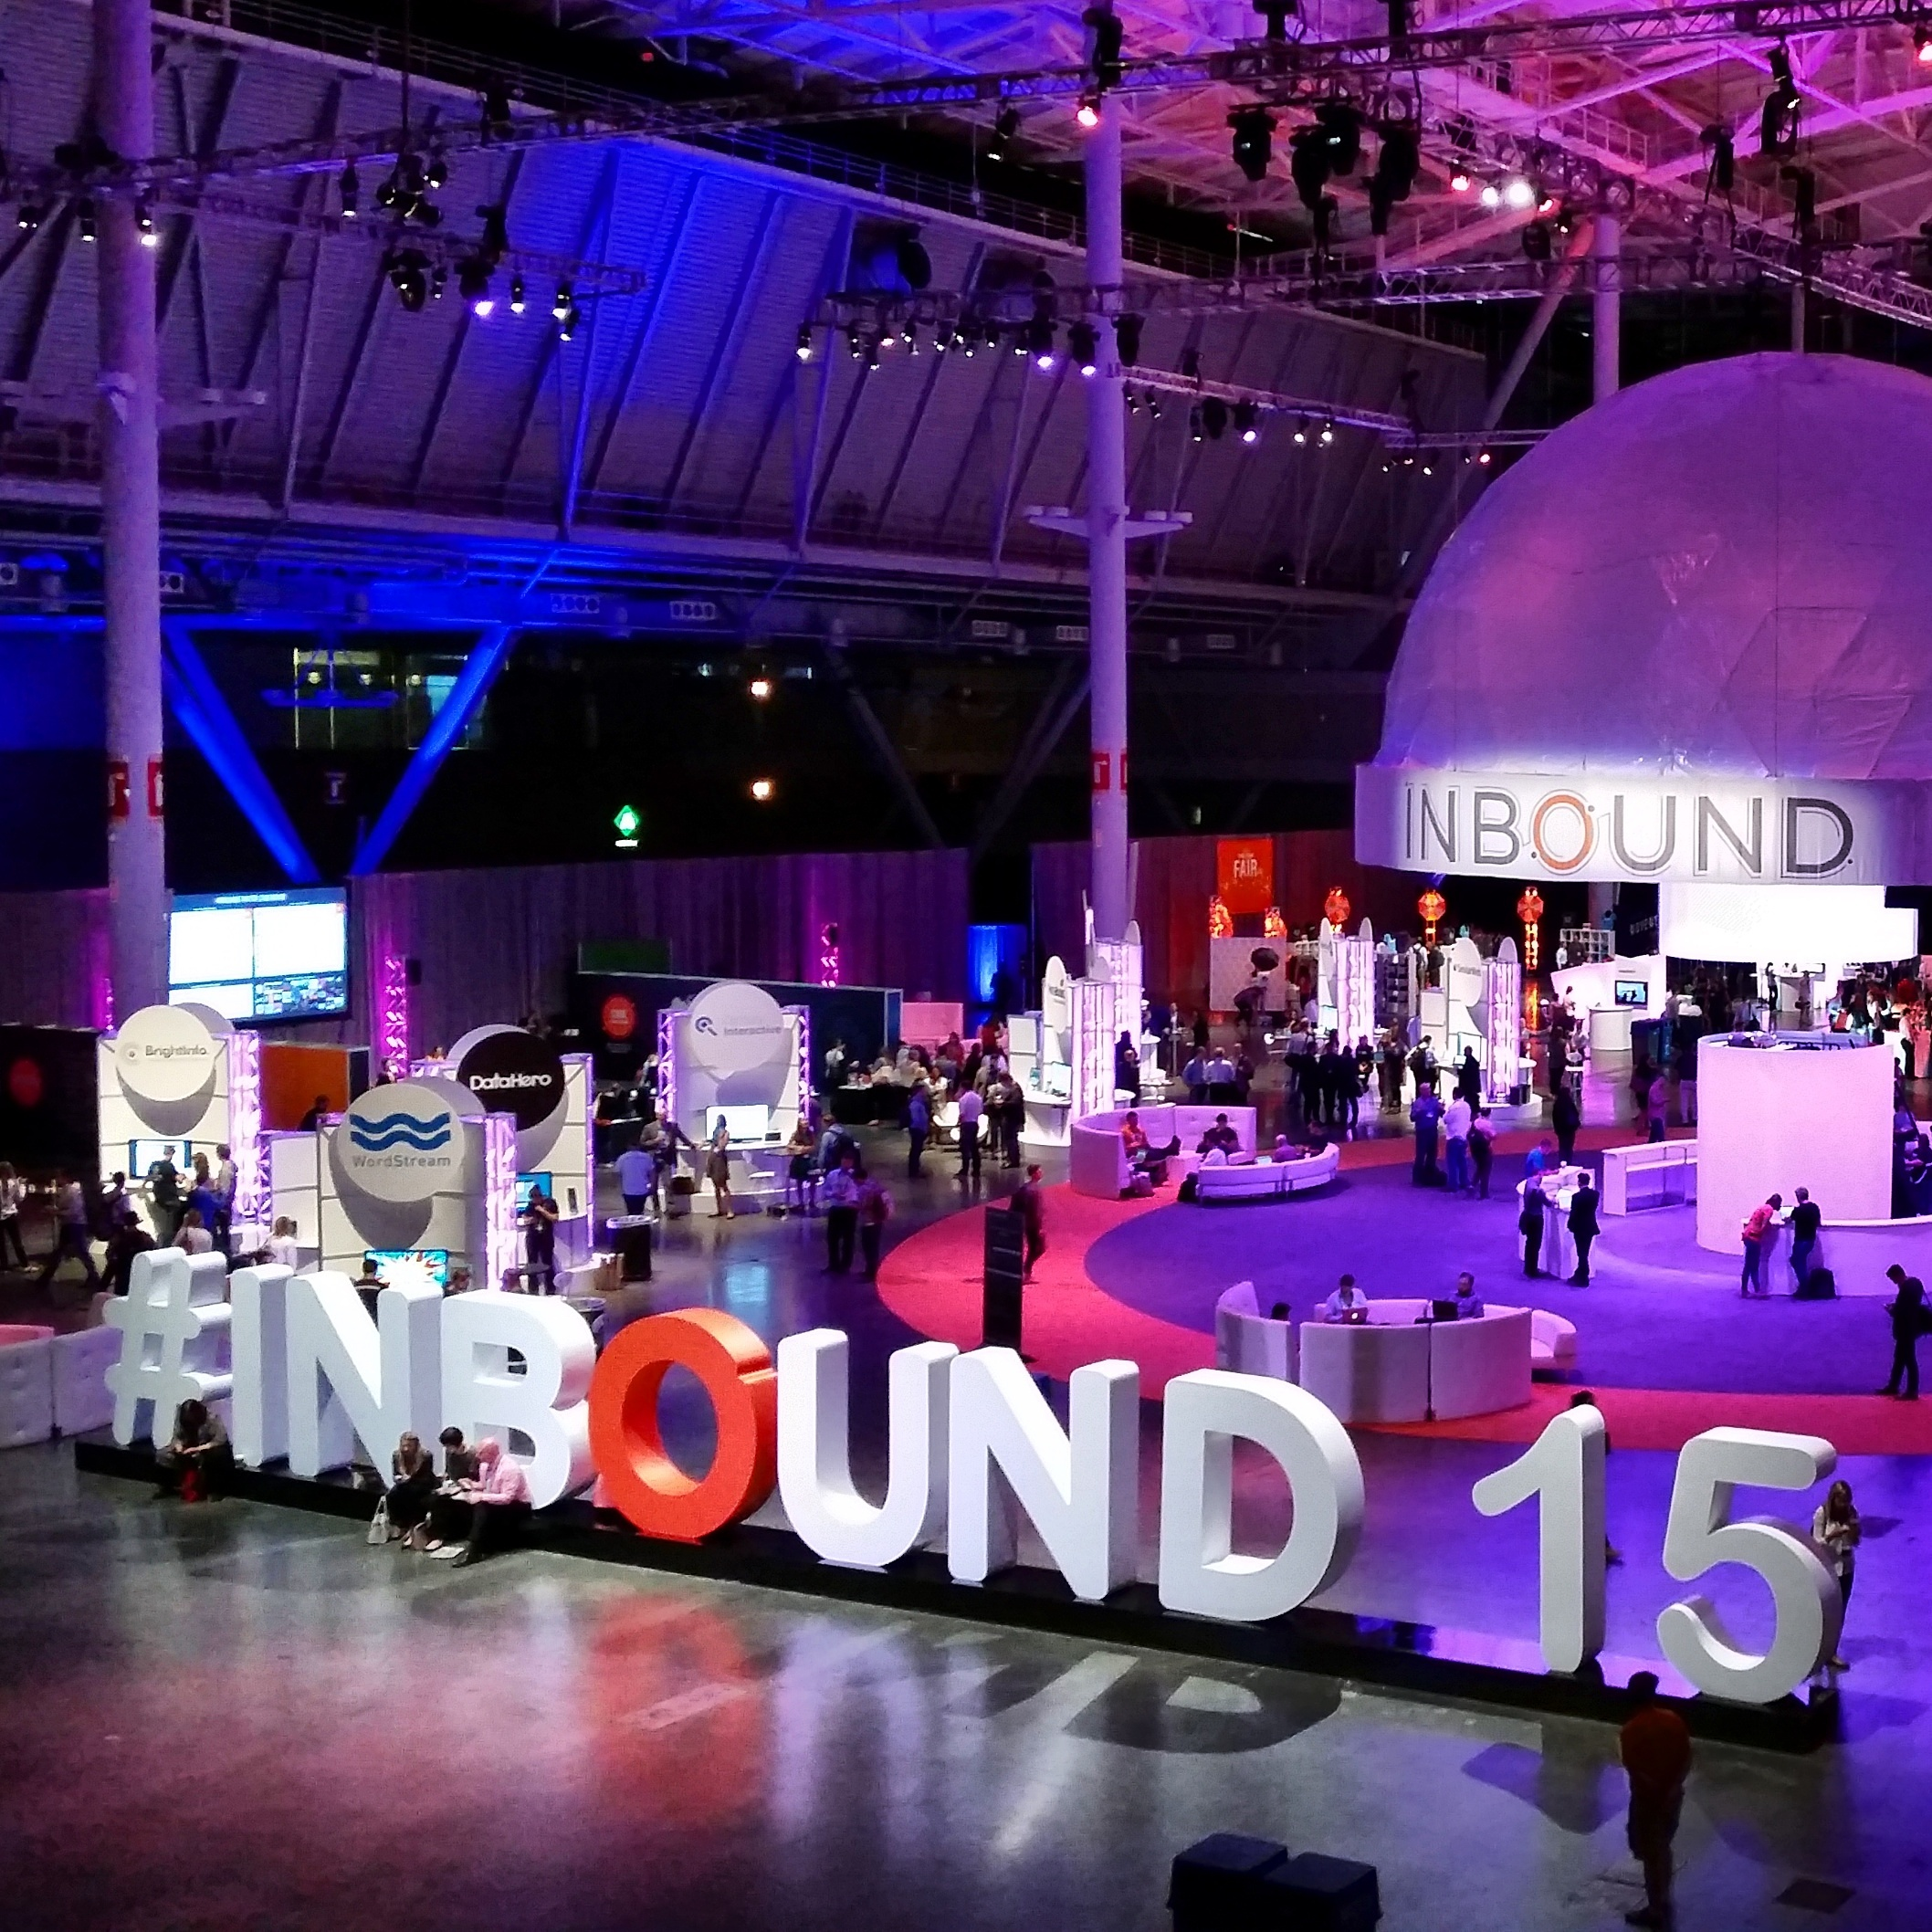 Welcome to Inbound 2015